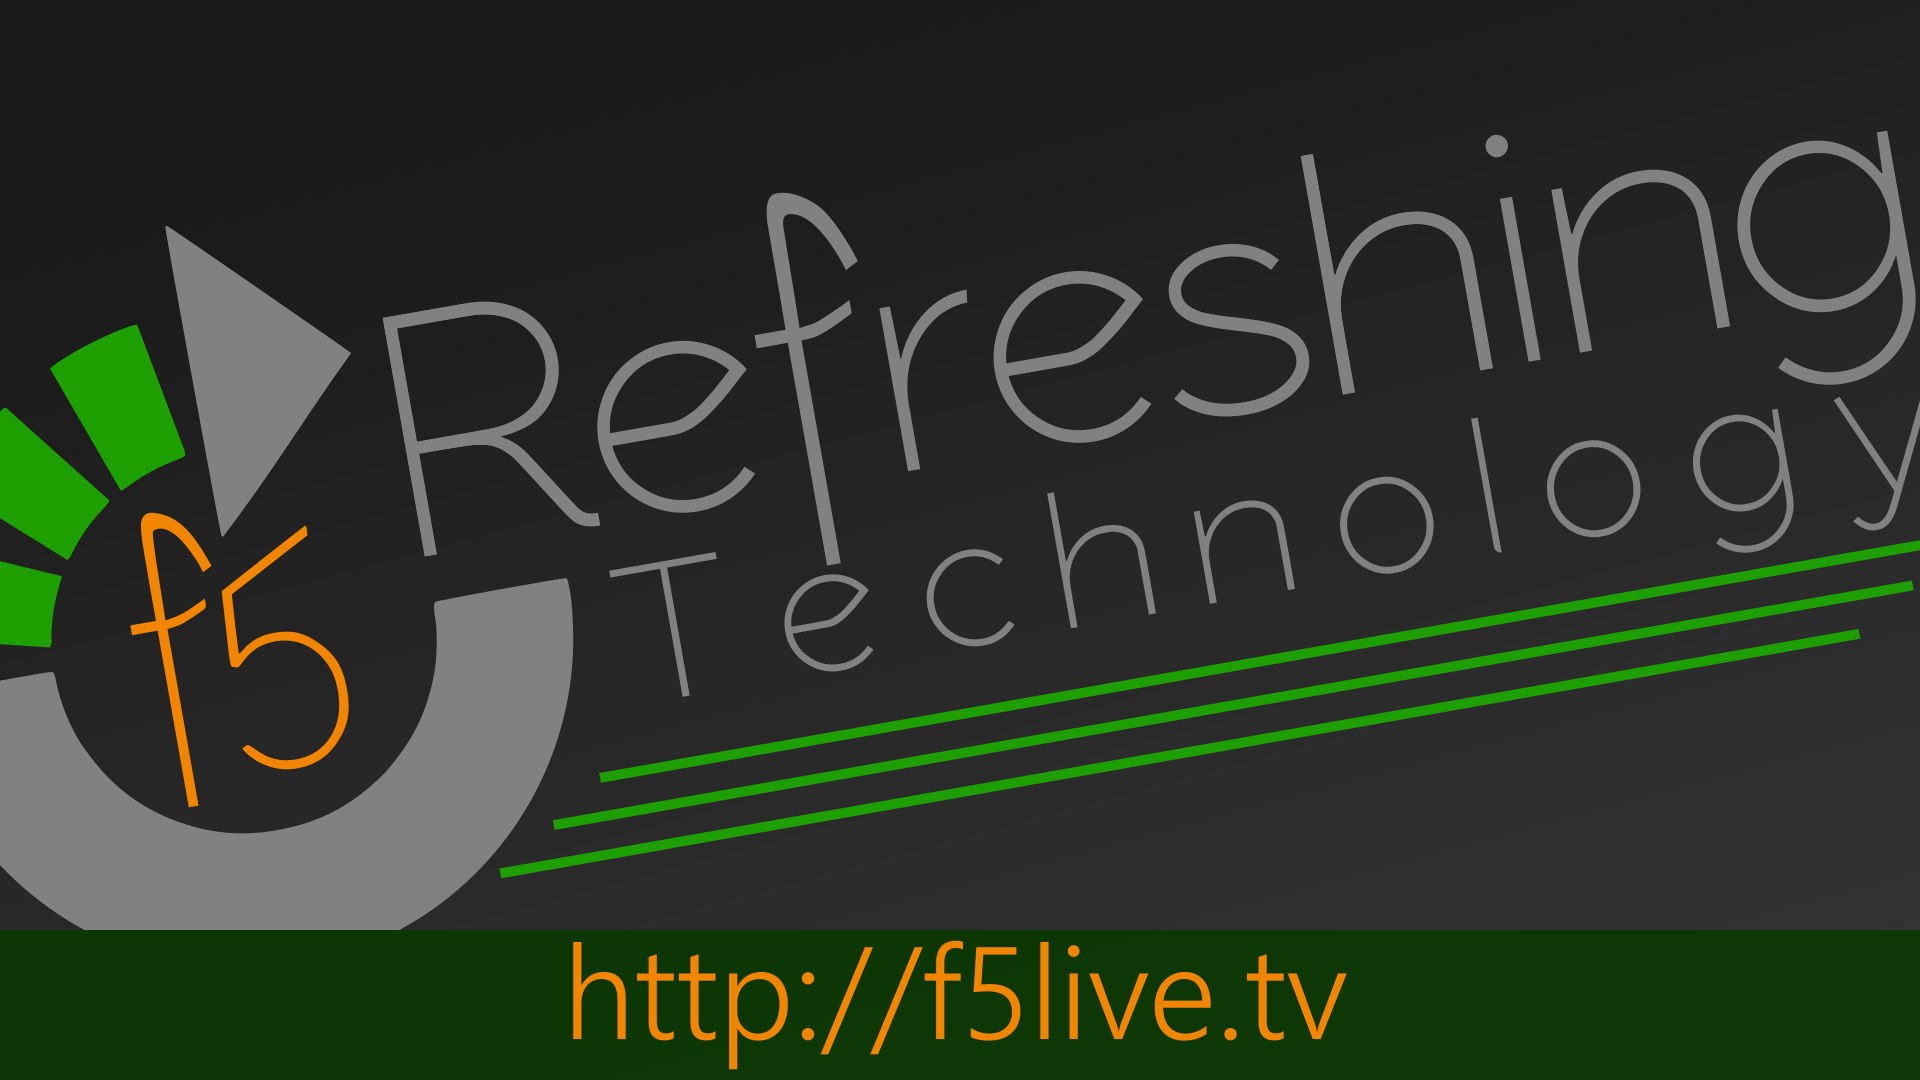 F5 Live: Refreshing Technology (Audio)